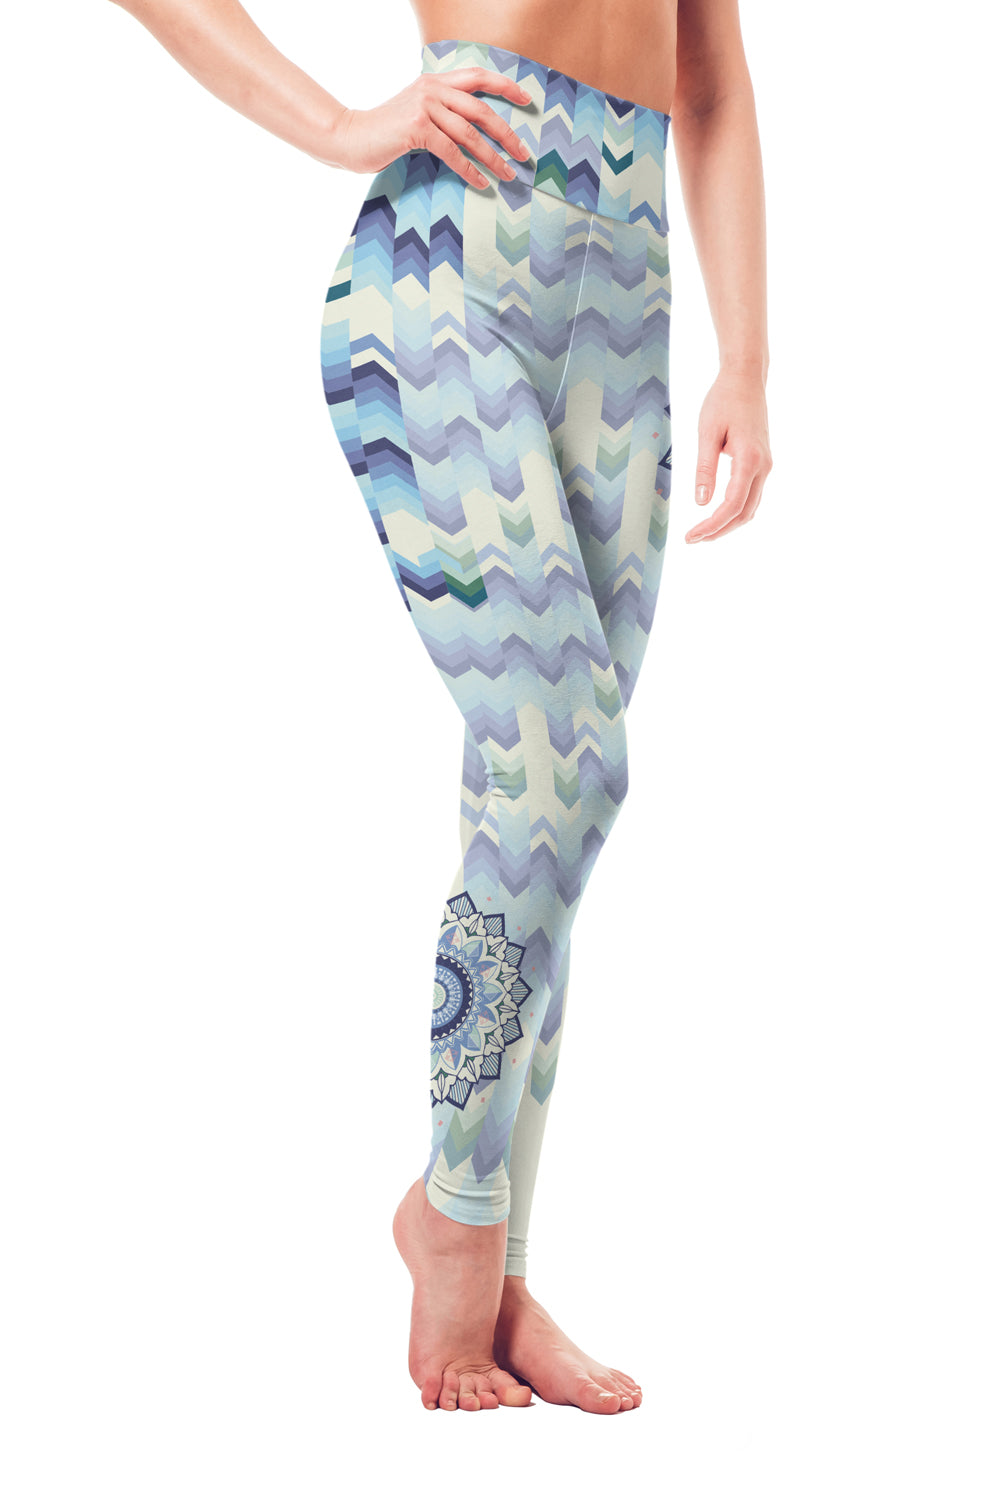 june-mandala-geometric-asymmetric-chic-yoga-leggings